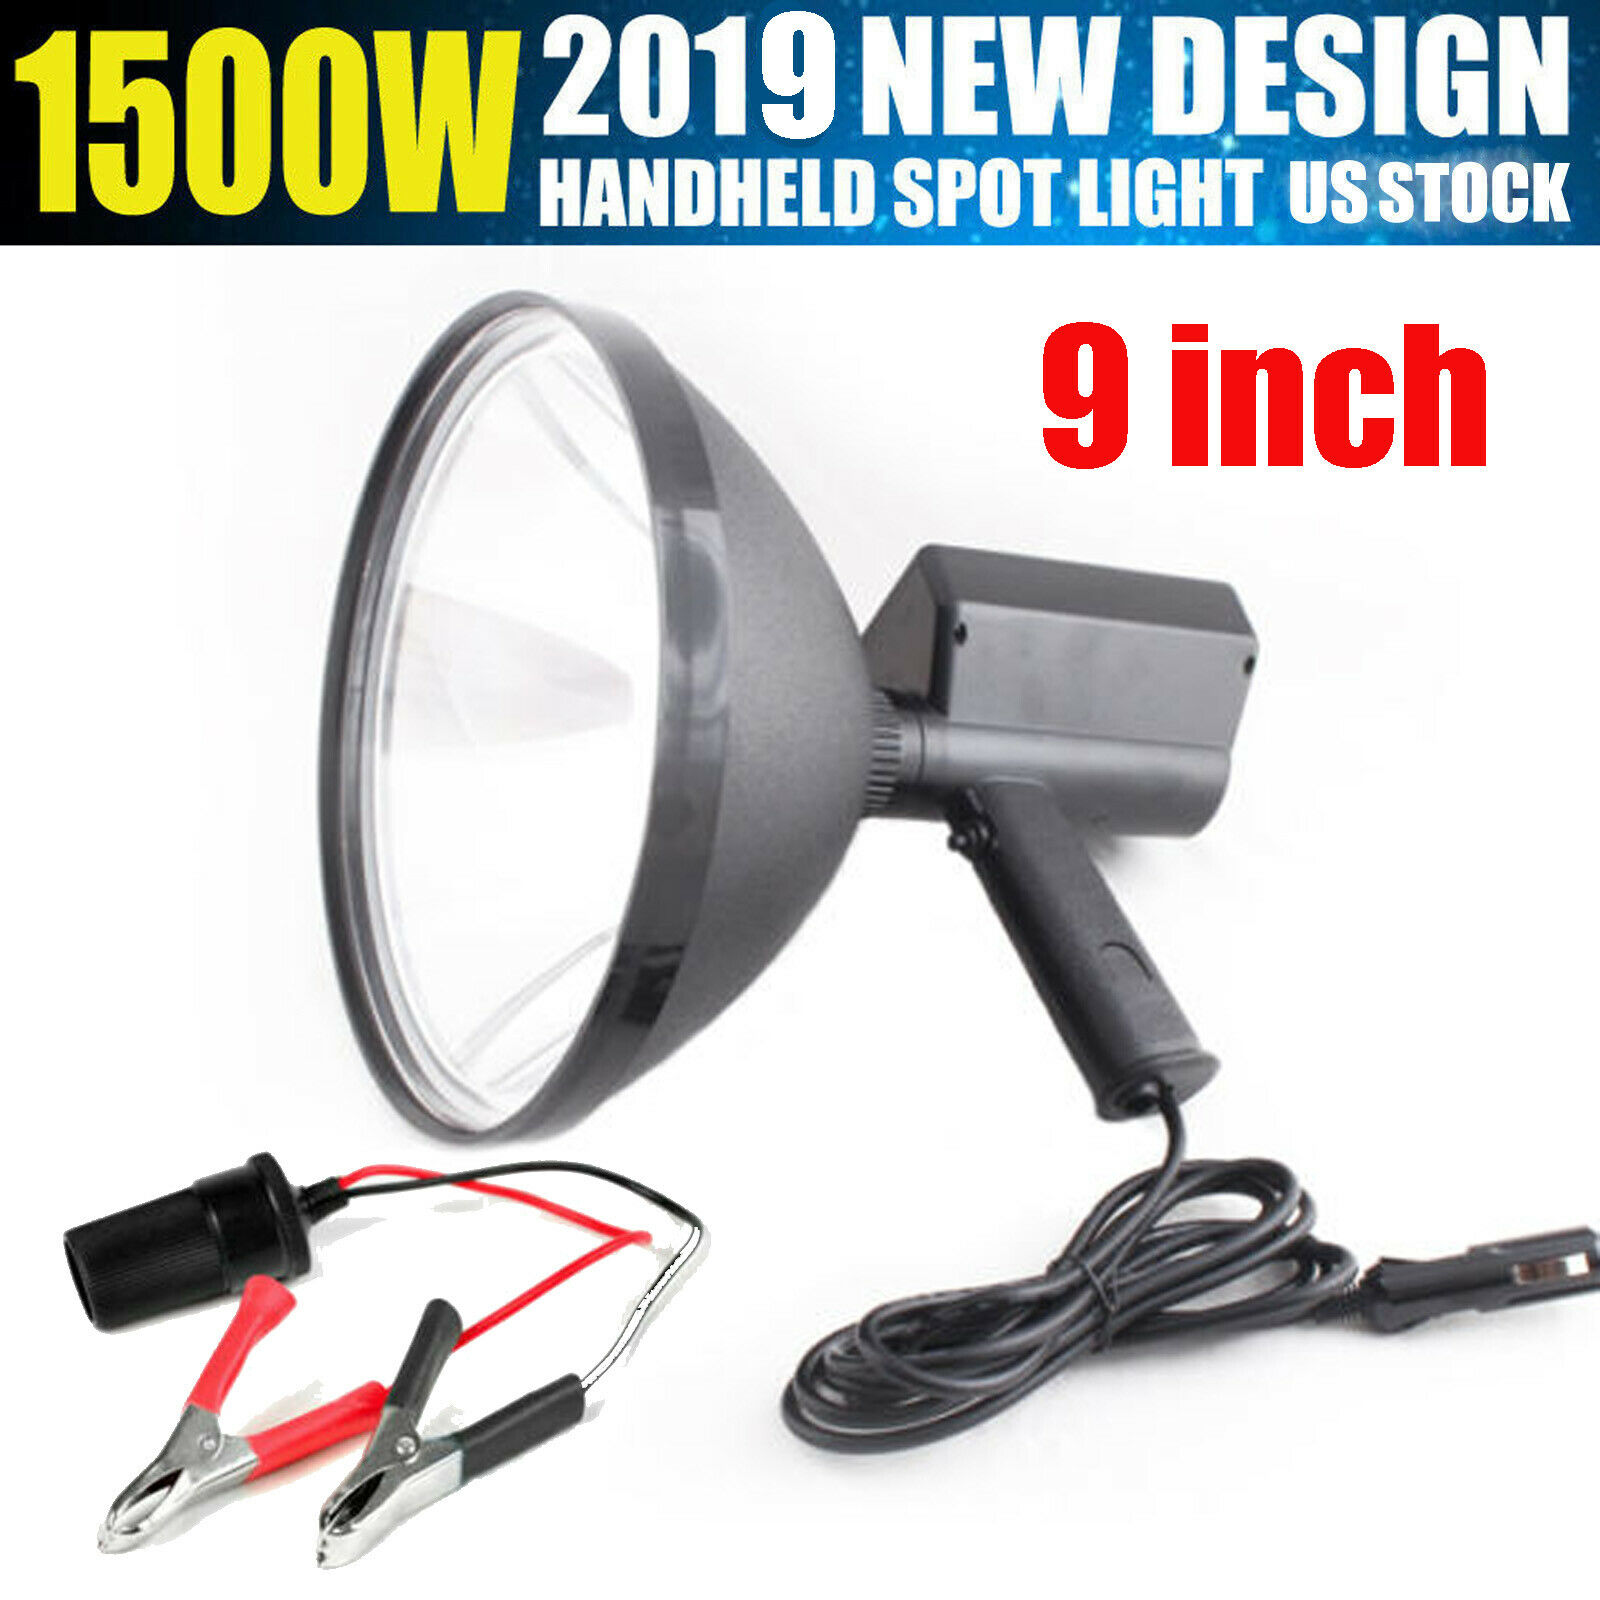 Hid  Xenon 1800W Waterproof Spotlight Hunting Handheld Search Torch Spot Light  clients first reputation first